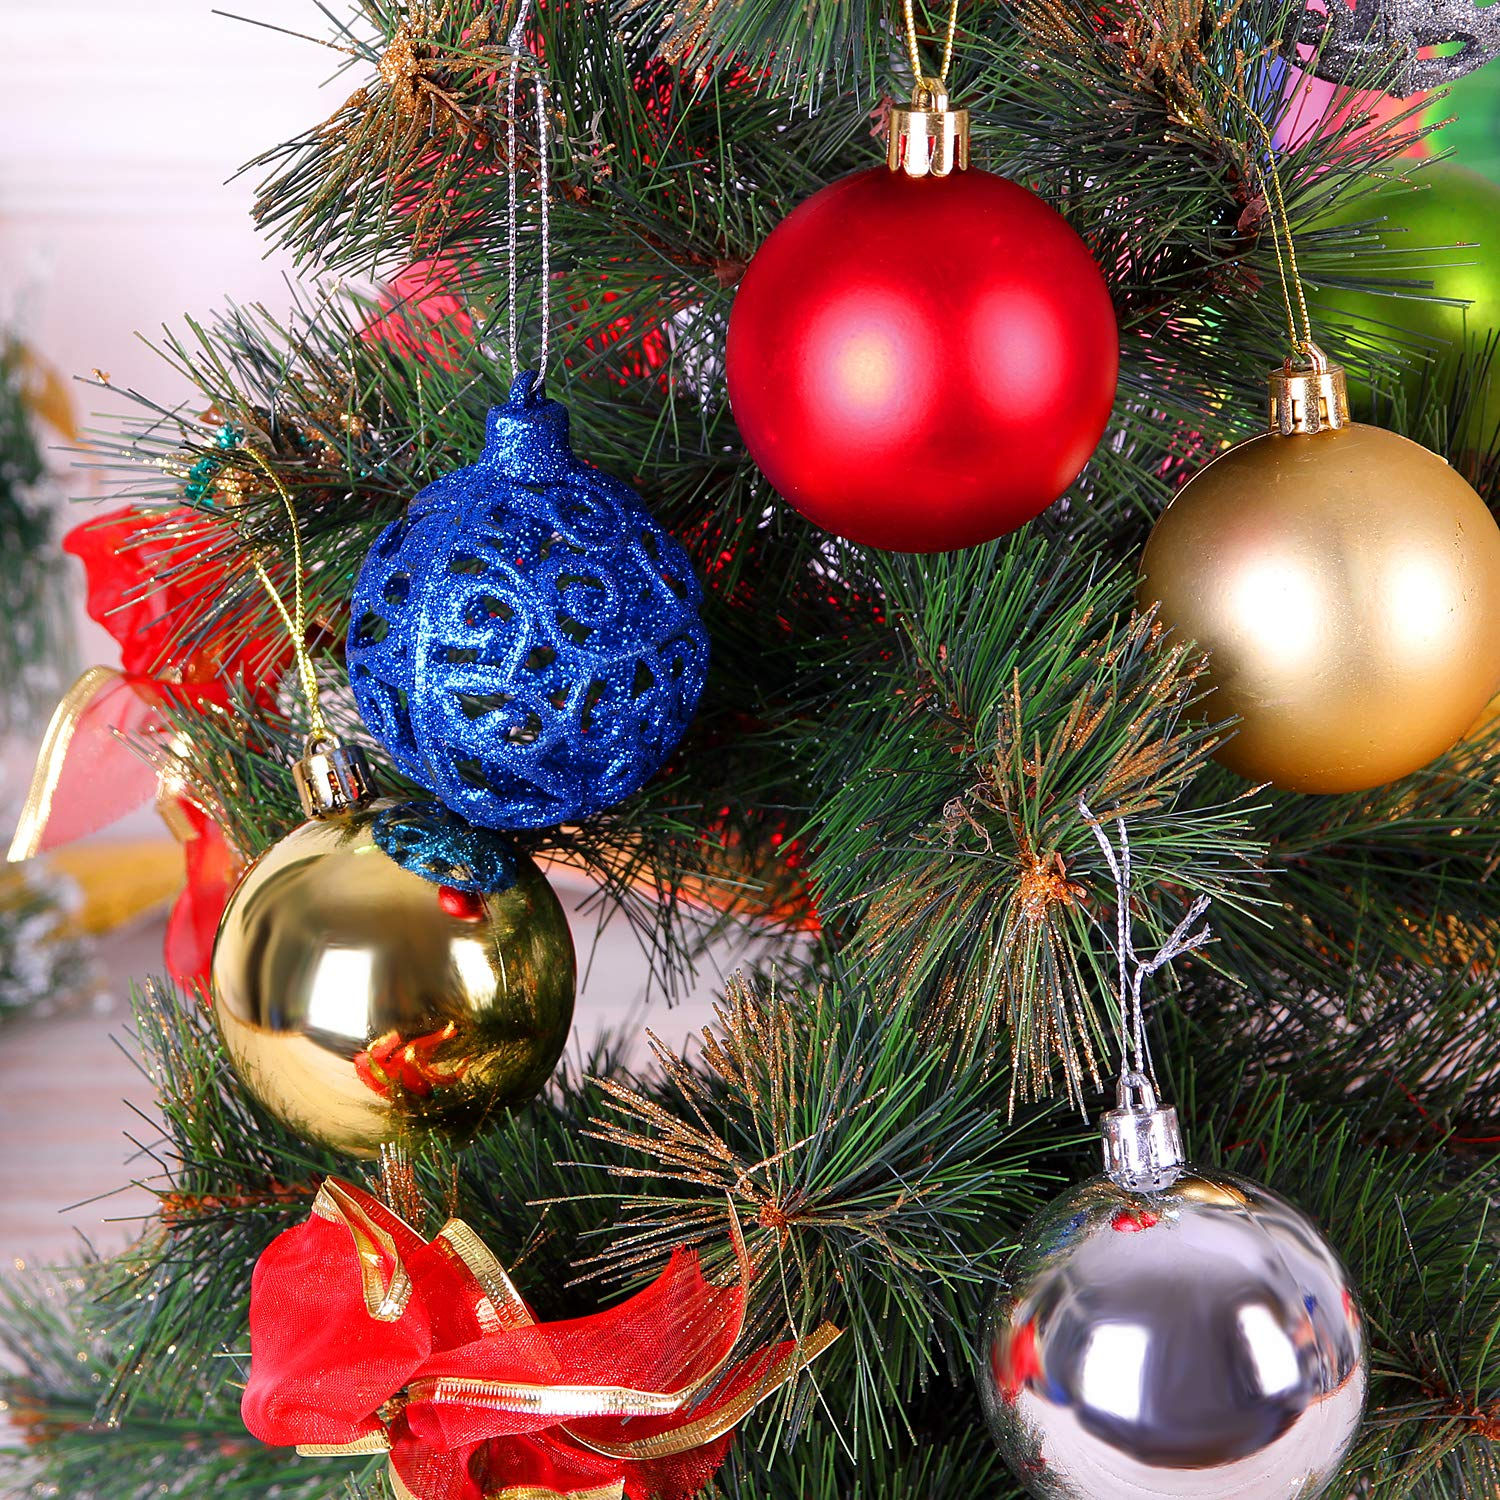 Atopsell 24ct 2.36 Decorations Balls Shatterproof Plastic Decorations Ornaments 4 Color Decorations Tree Balls for Outdoor Indoor Party Decoration with 3 Styles,Red Blue Gold Silver